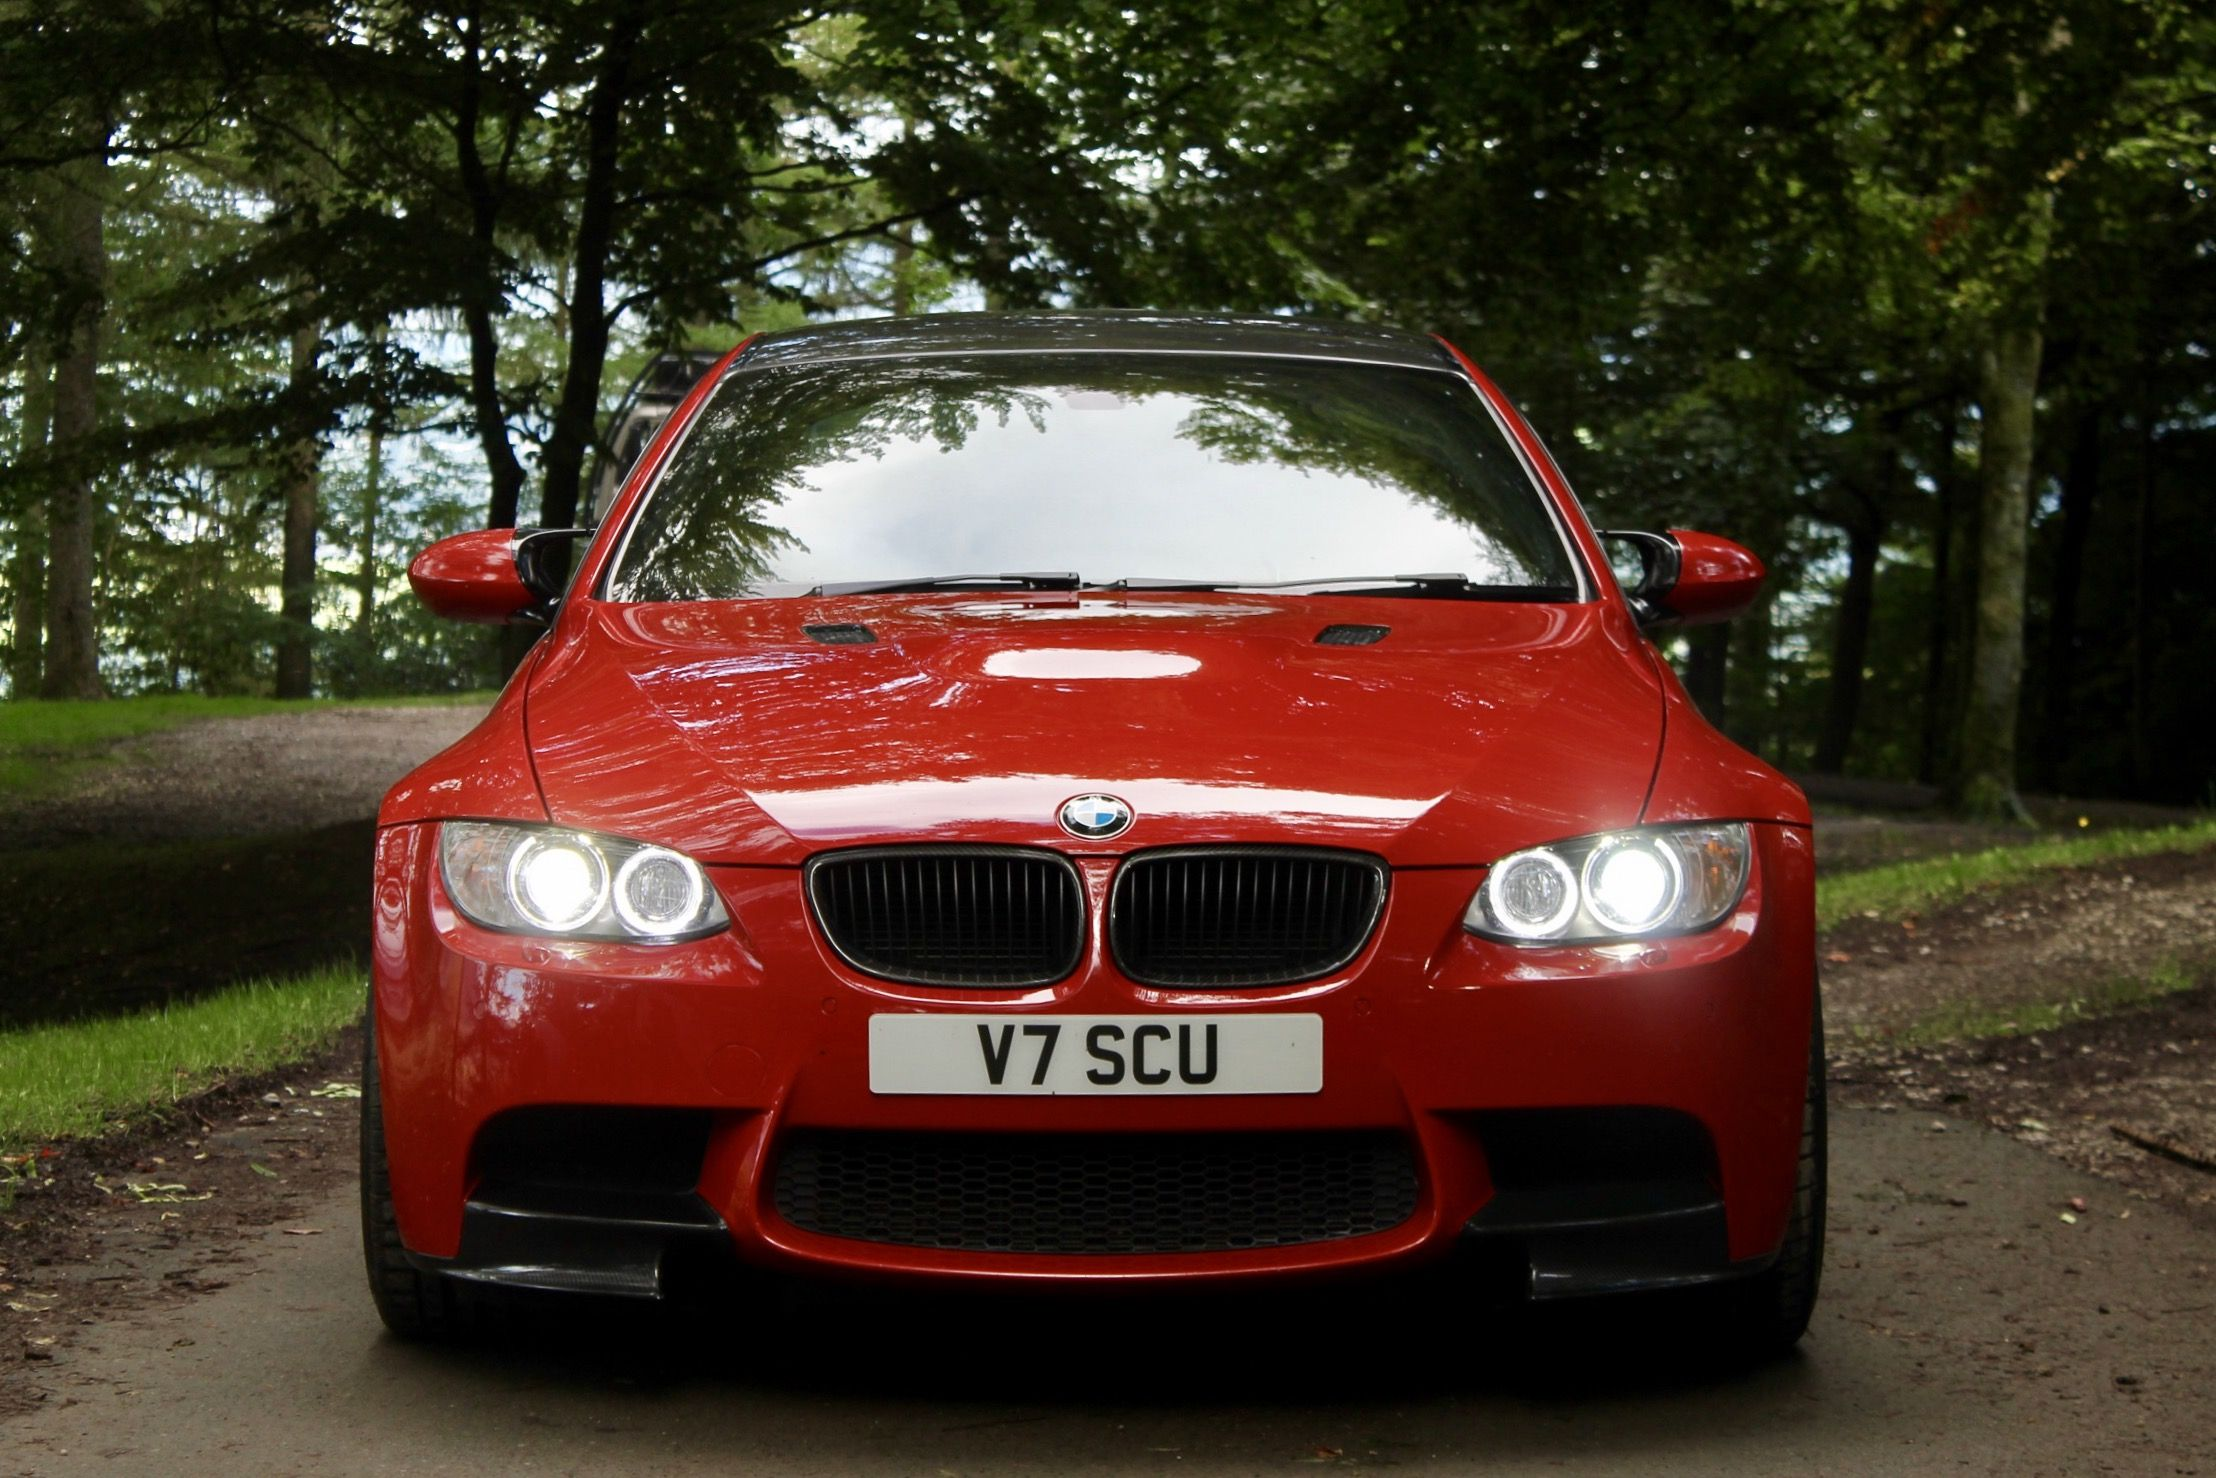 2012 bmw e92 m3 individual japan red 1 of 37 competition pack edc [ 2216 x 1478 Pixel ]